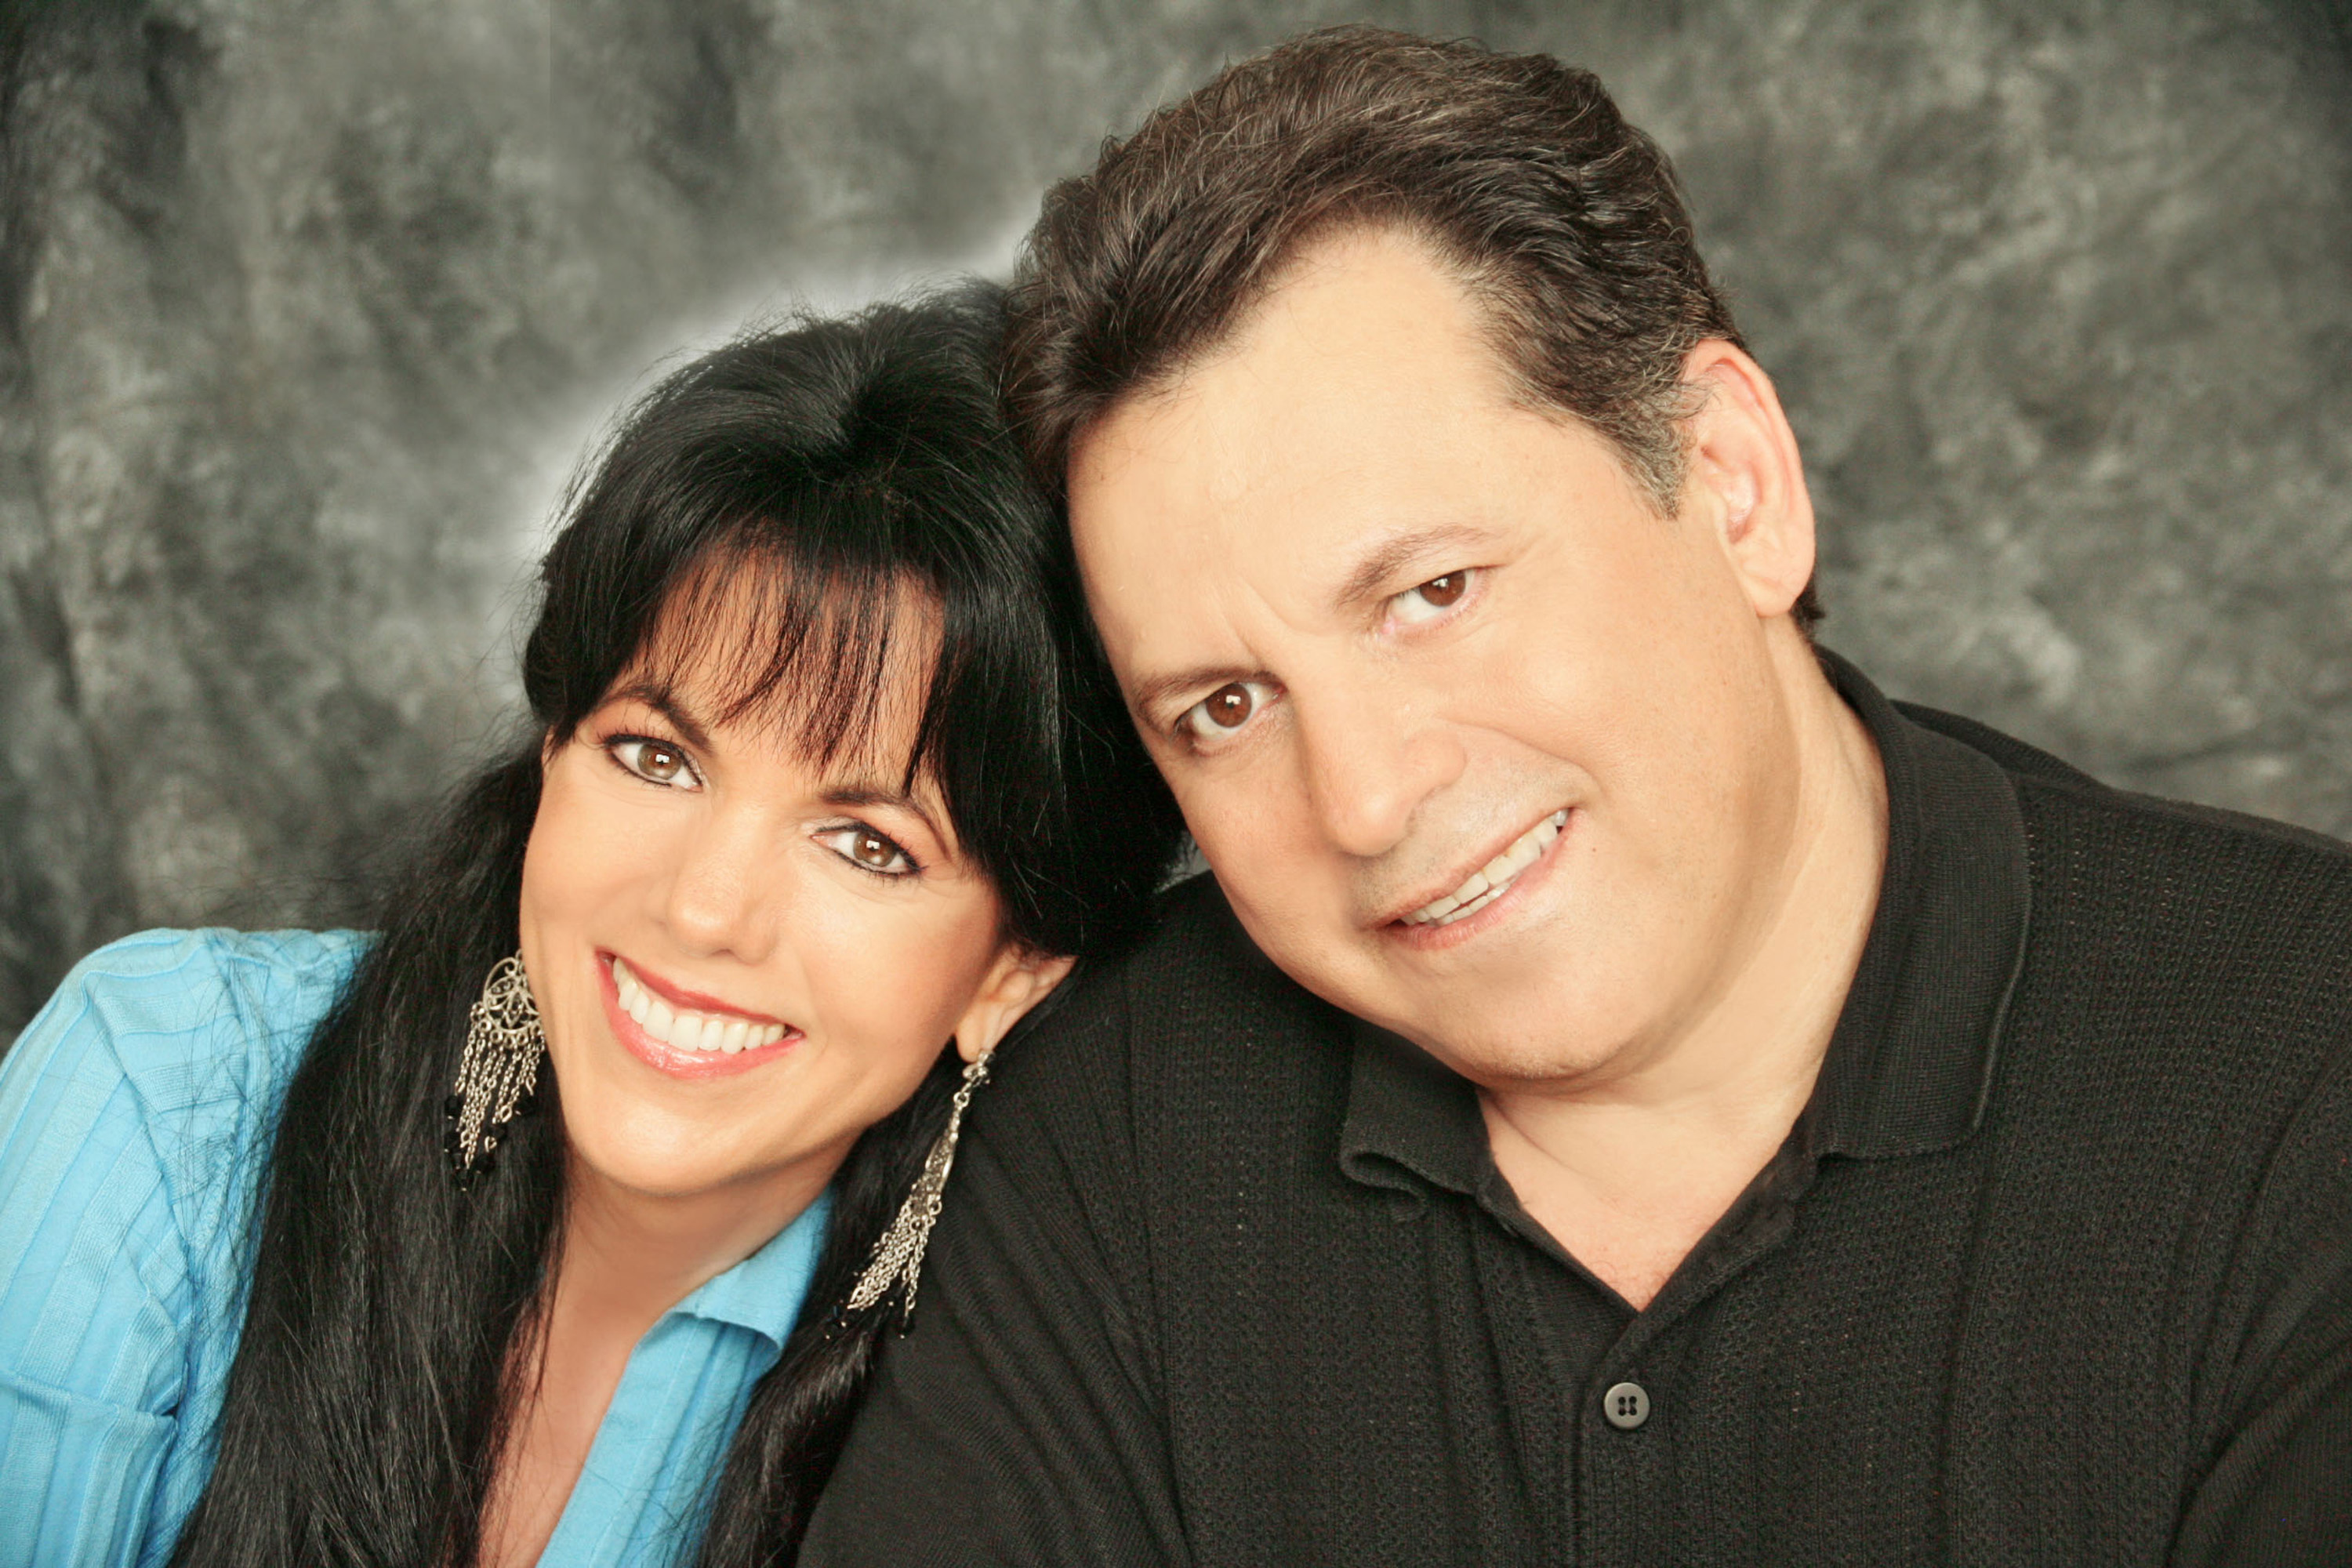 Promo shot of Mario and Mechelle